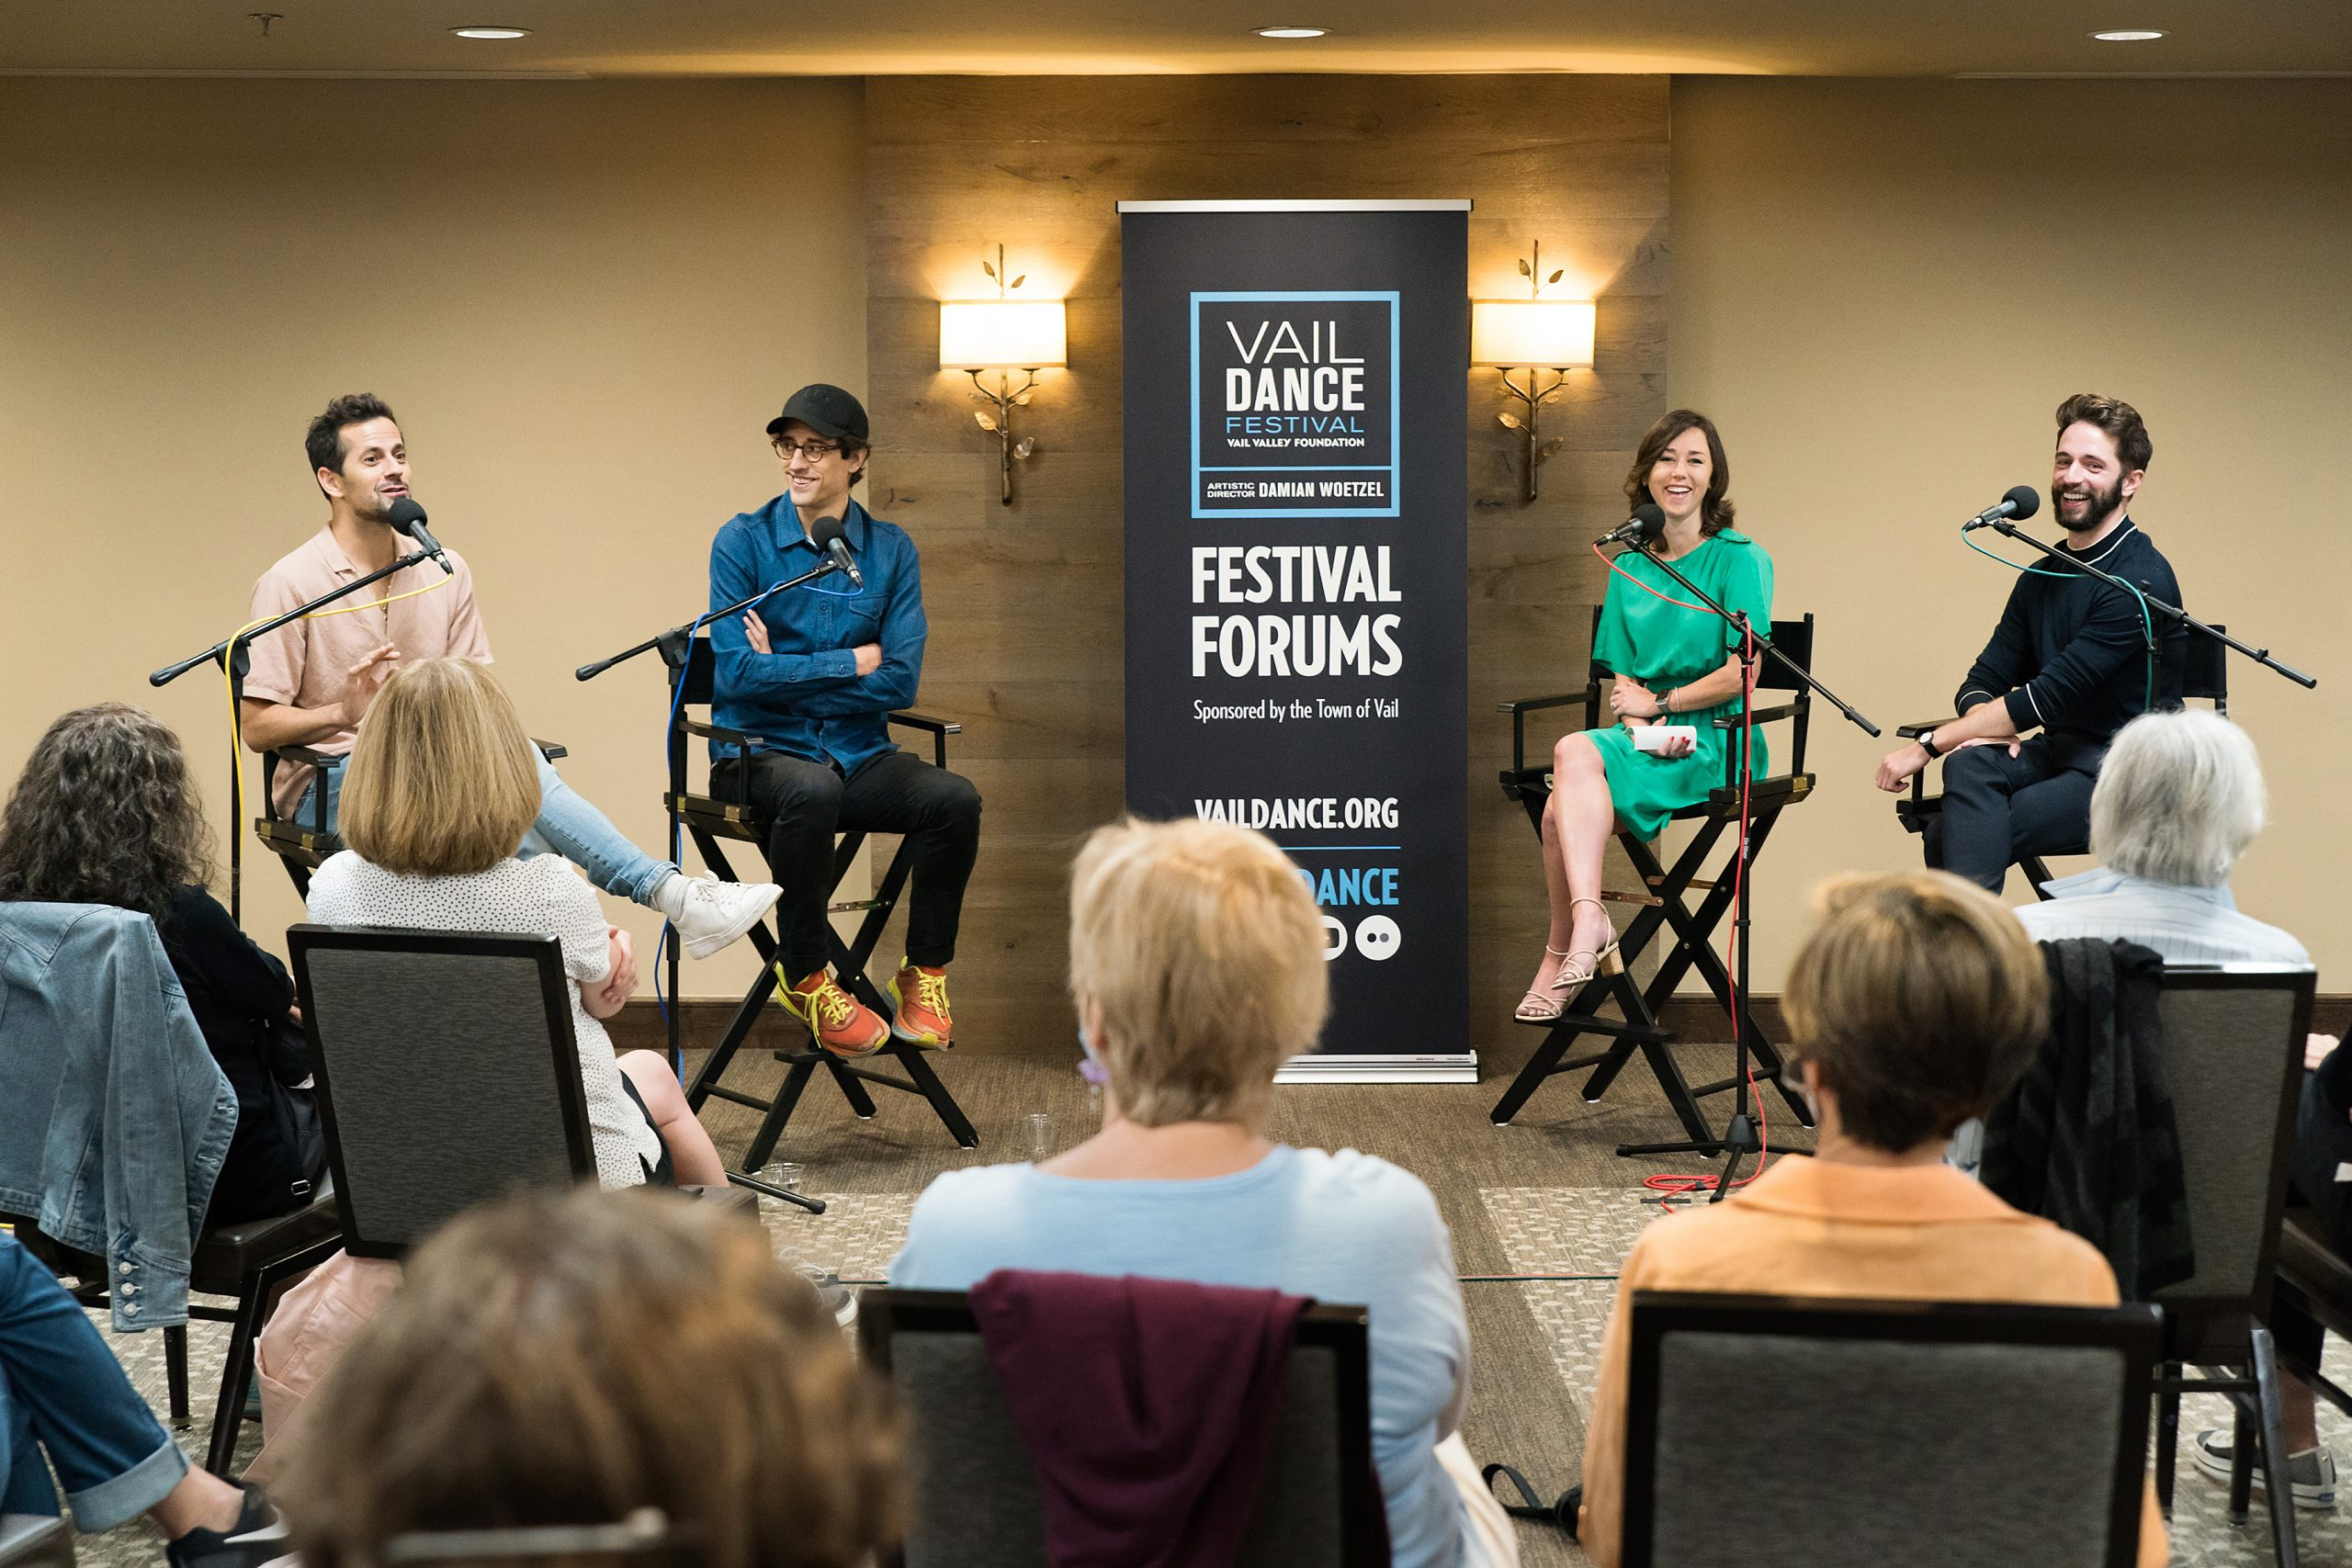 vail dance festival, justin peck, robbie fairchild, conversations on dance, new york city ballet, nycb, broadway, an american in paris, carousel on broadway, cats the musical, west side story, west side story movie, rebecca king ferraro, michael sean breeden, podcast, dance podcast, ballet podcast, ballet, ballerina, choreography, resident choreographer,